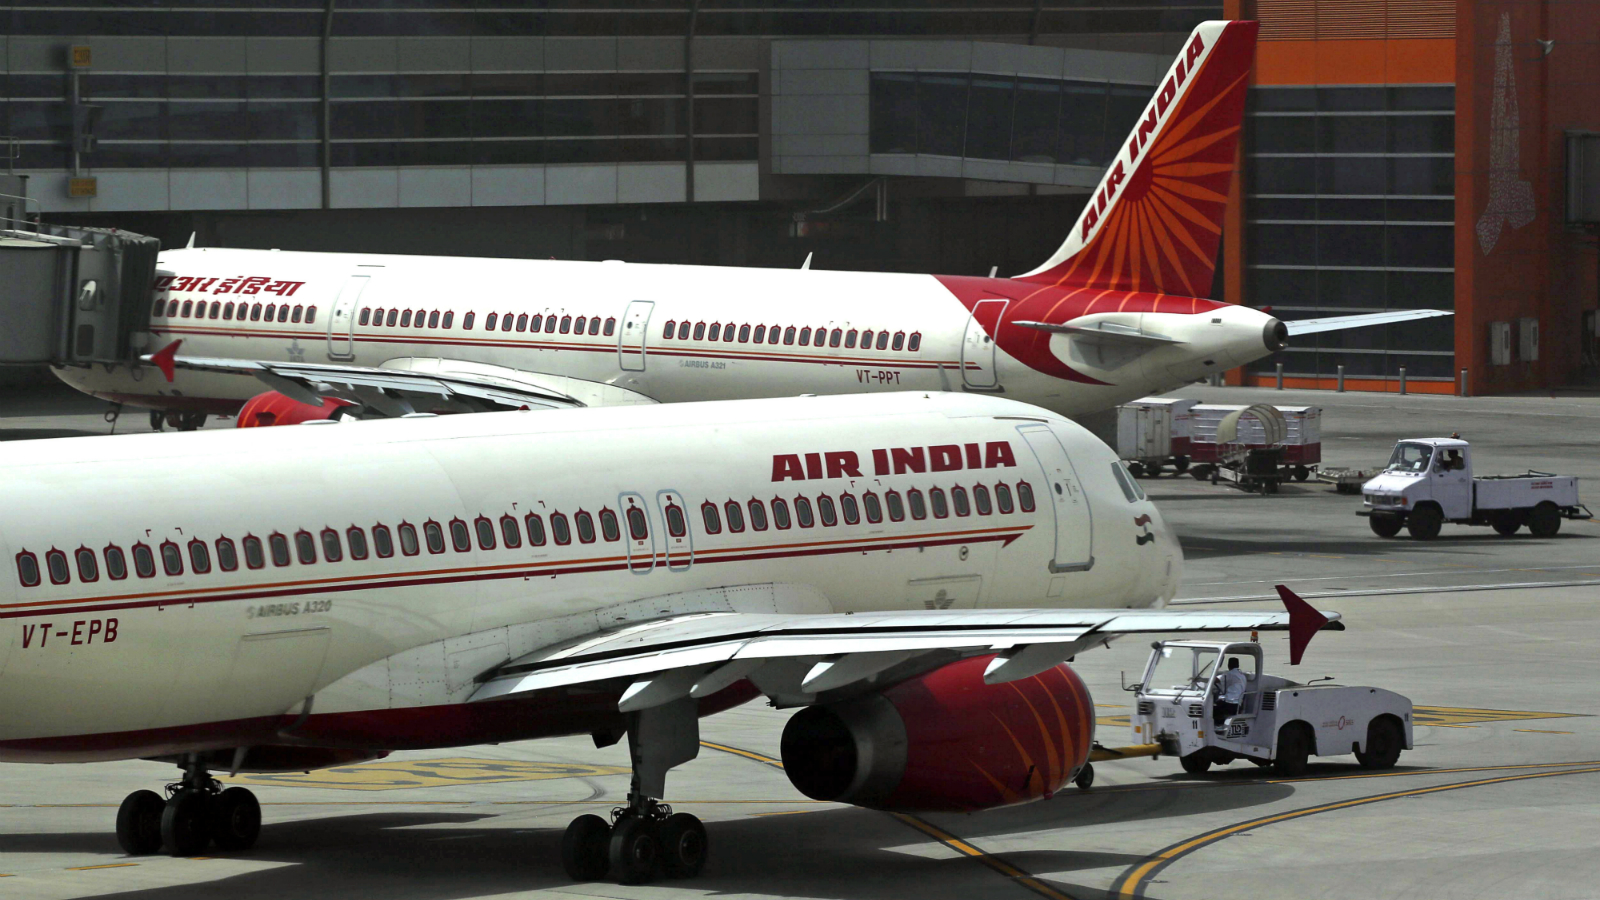 Air India Stake Sale: Swiss Aviation Consulting Denies Bidding For National Carrier